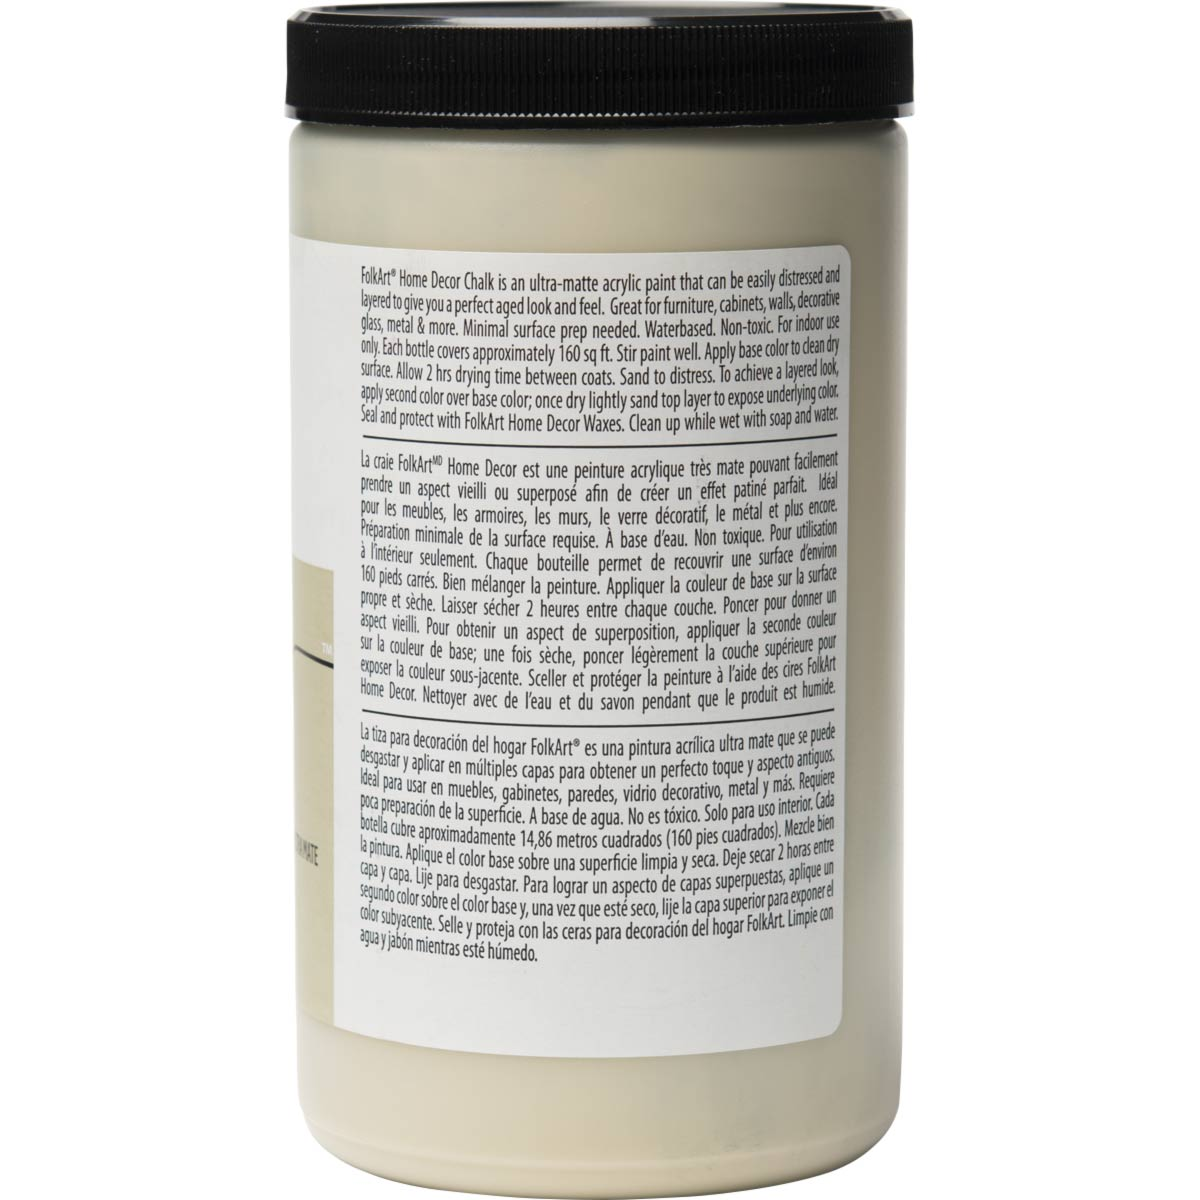 F/A HOME DECOR CHALK - OATMEAL 32 OZ.